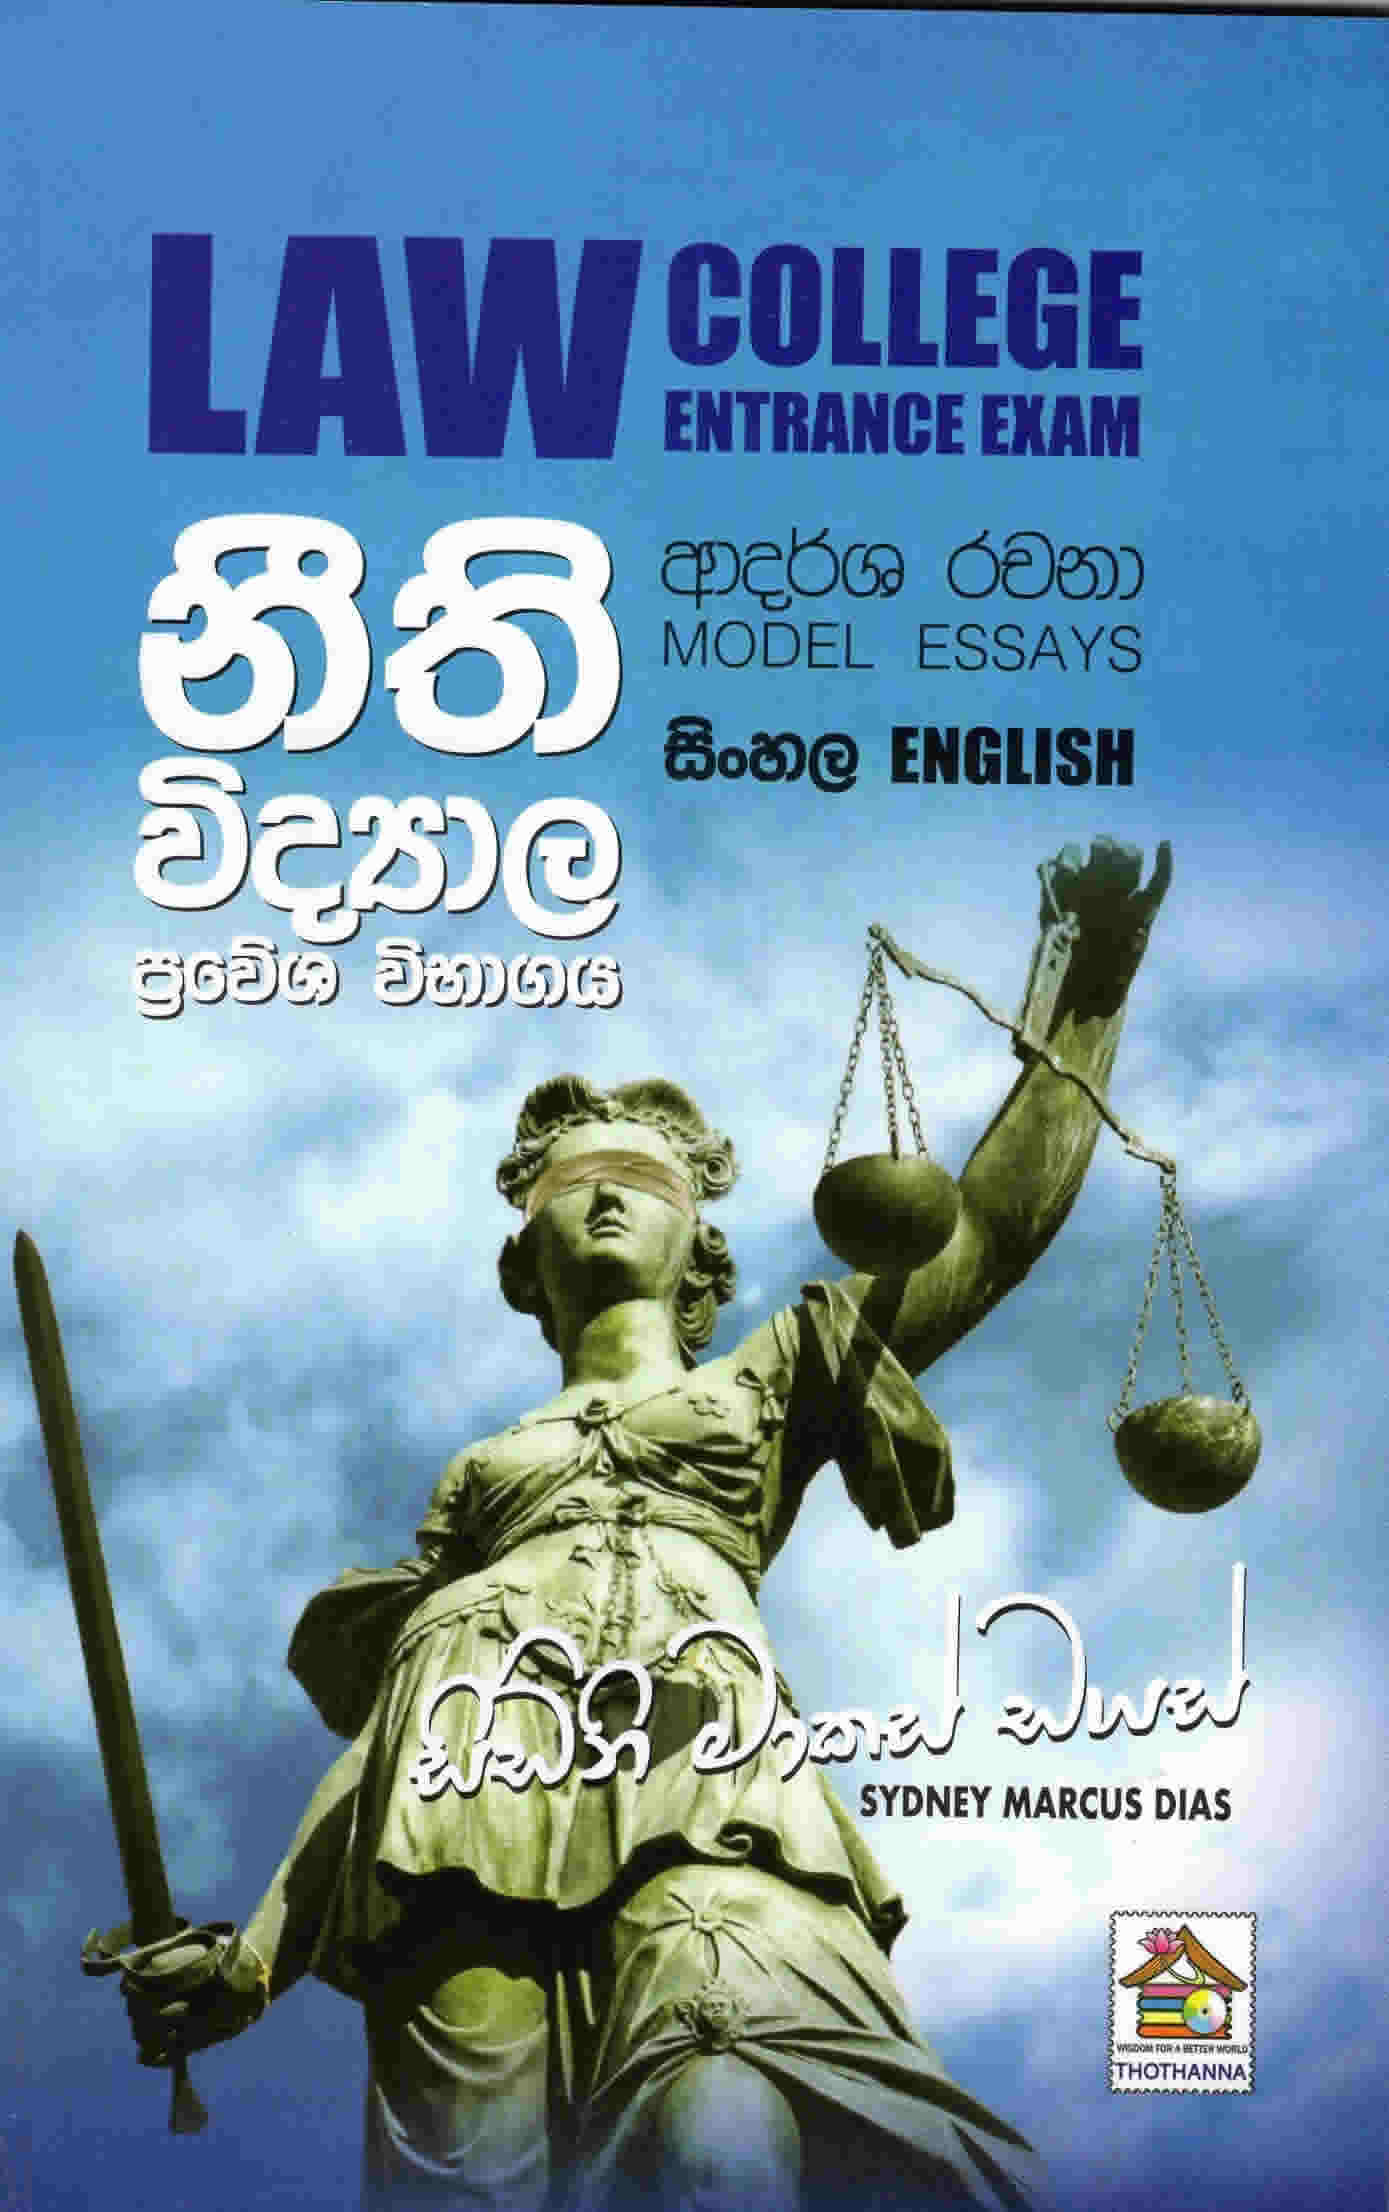 Law College Entrance Exam